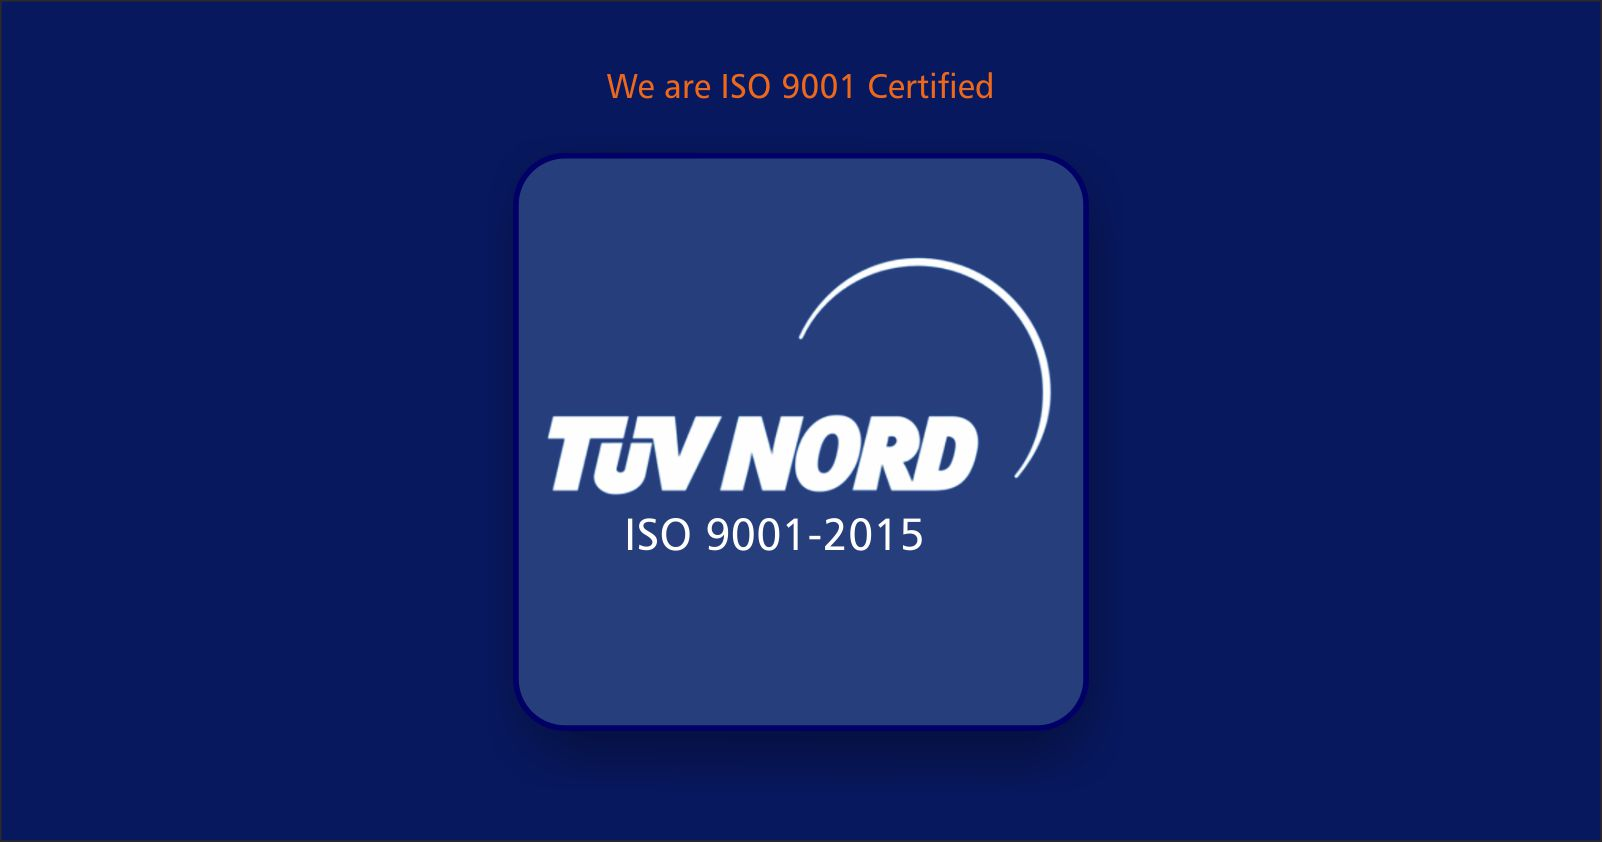 Delighted to Announce: We are ISO 9001 Certified!